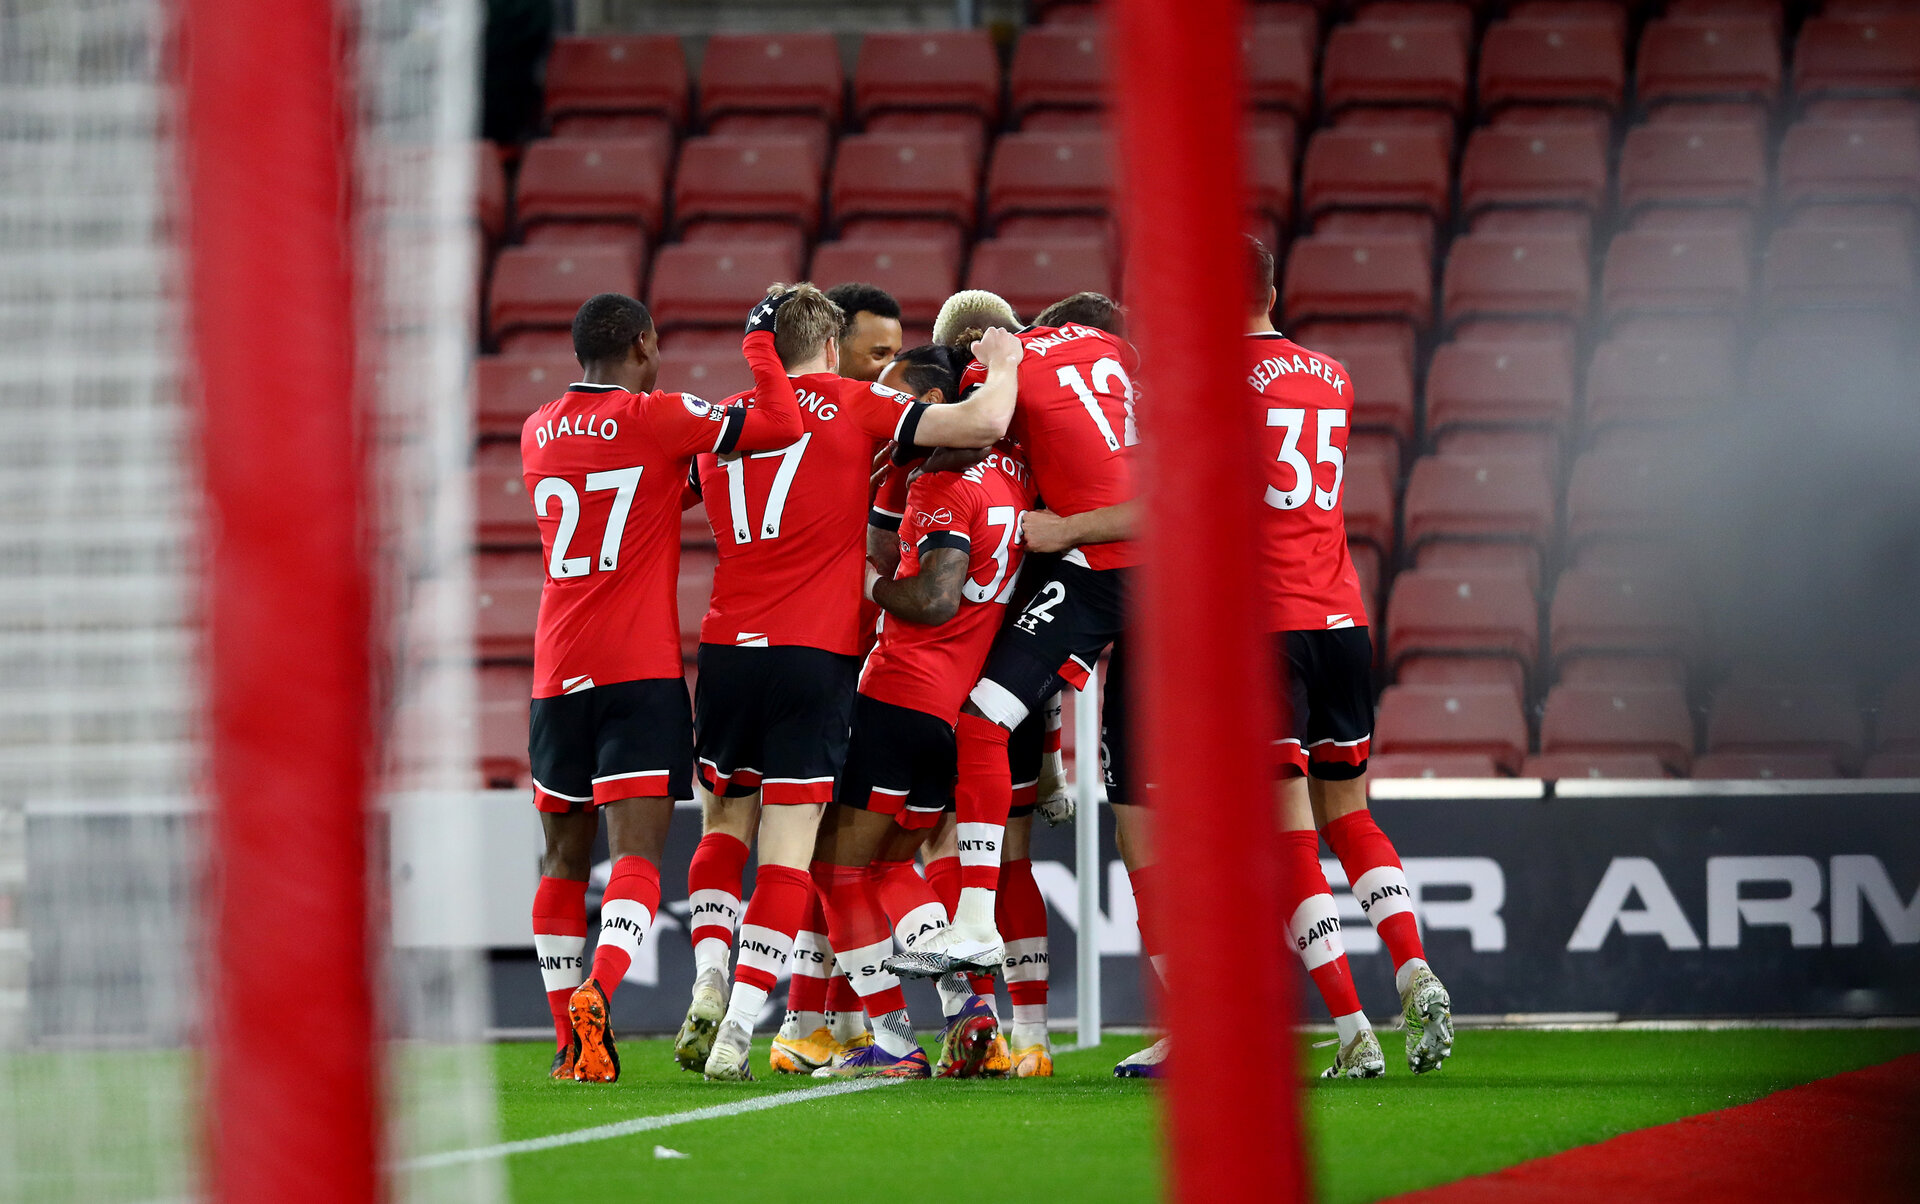 SOUTHAMPTON, ENGLAND - JANUARY 04: Southampton players celebrate after Danny Ings(obscure) opens the scoring during the Premier League match between Southampton and Liverpool at St Mary's Stadium on January 04, 2021 in Southampton, England. (Photo by Matt Watson/Southampton FC via Getty Images)